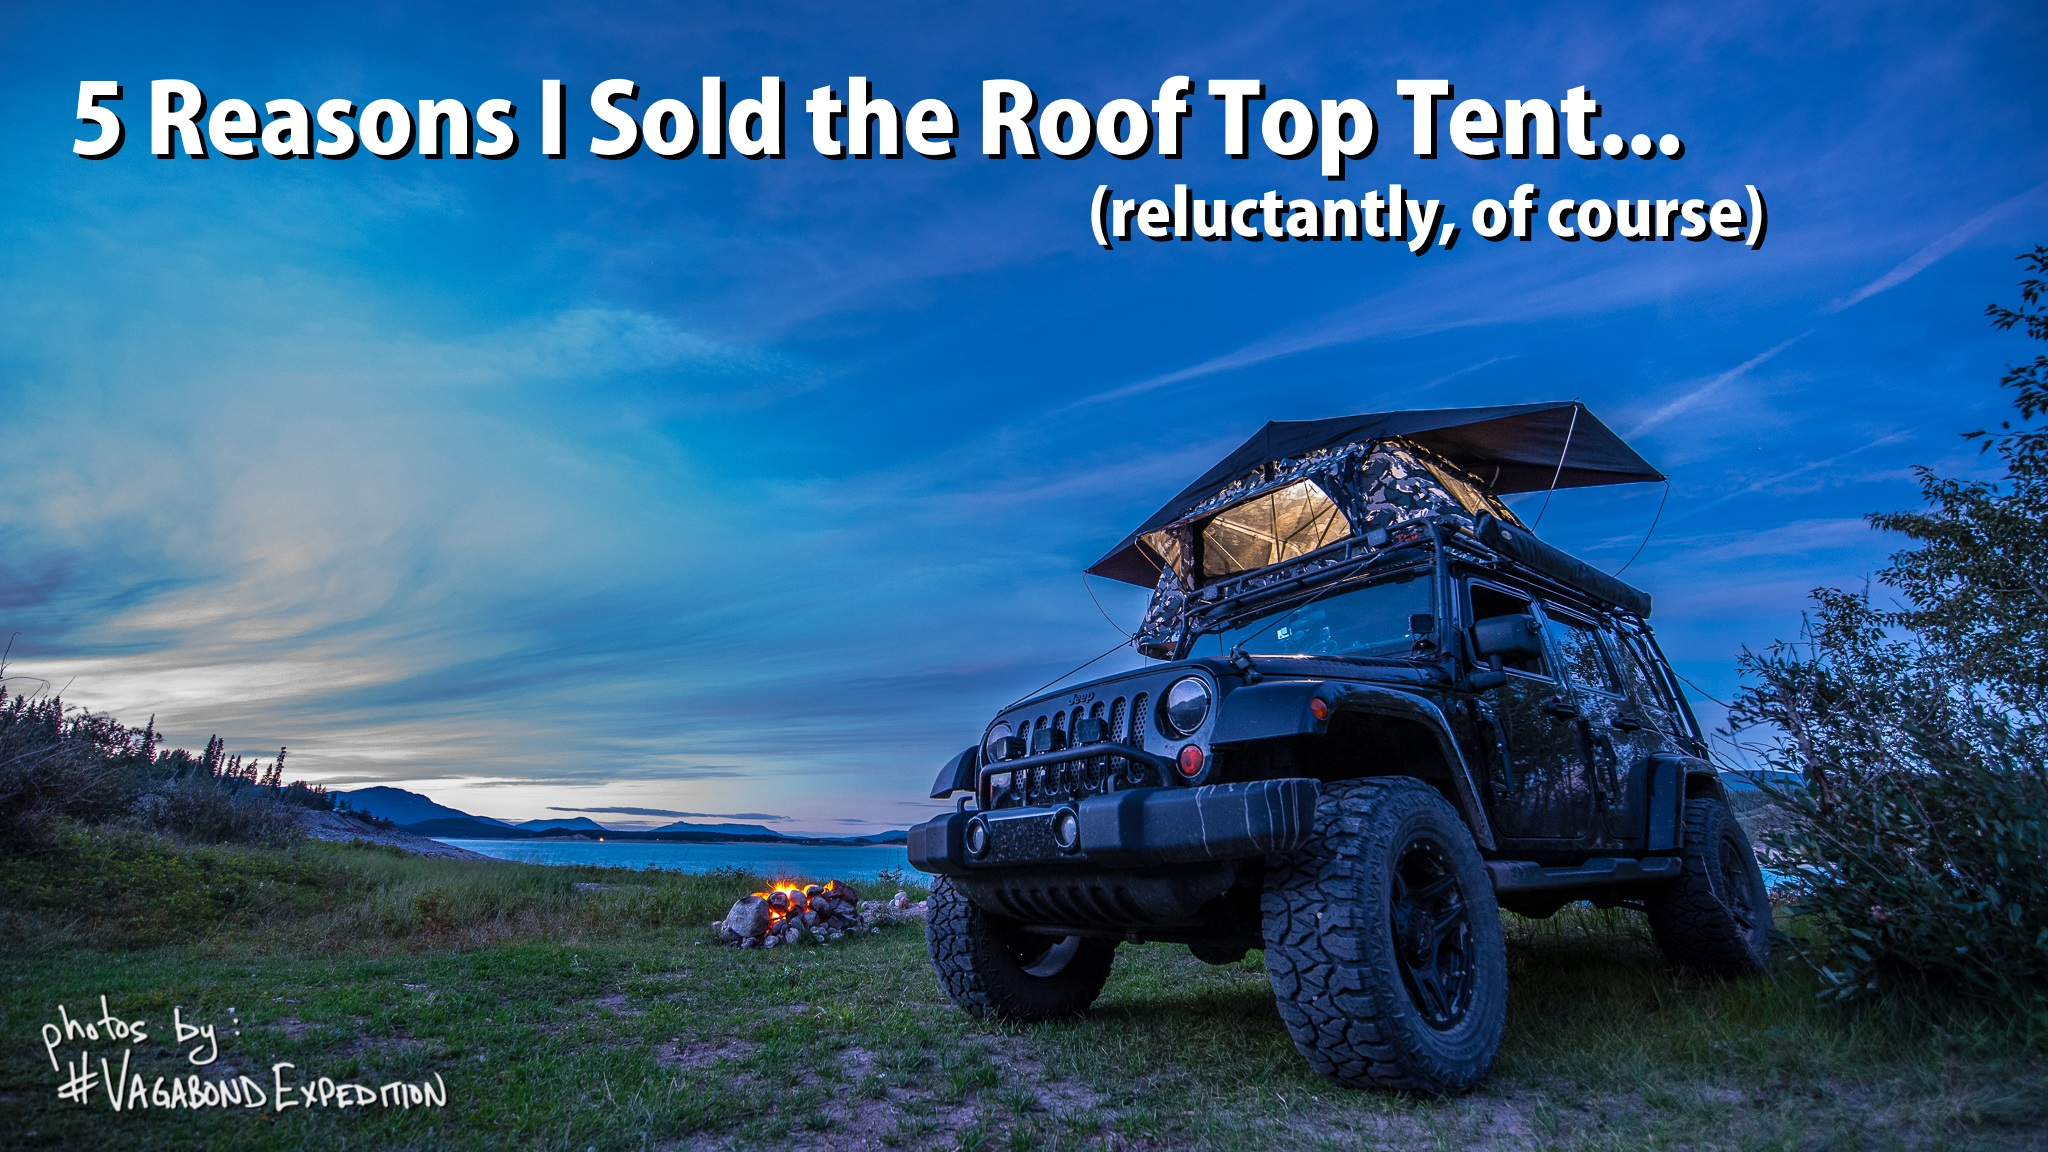 The VagabondExpedition Overland Jeep parts ways with our Tepui roof top tent for 2017 and beyond. Although we love RTT's, here's why we parted with ours.